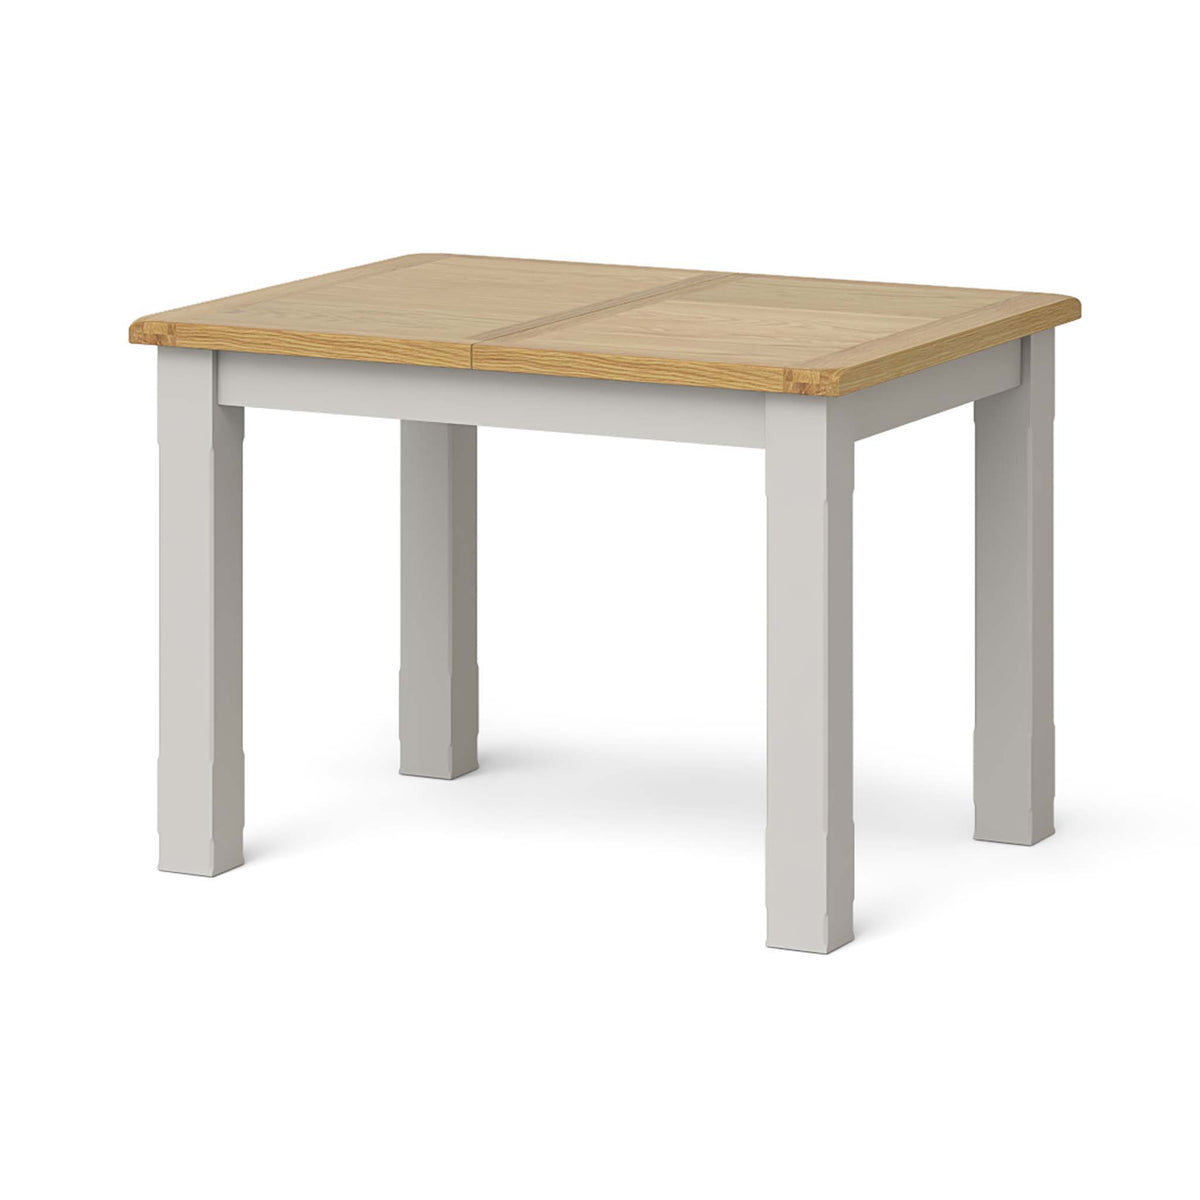 Lundy Grey Compact Extending Dining Table - Closed view